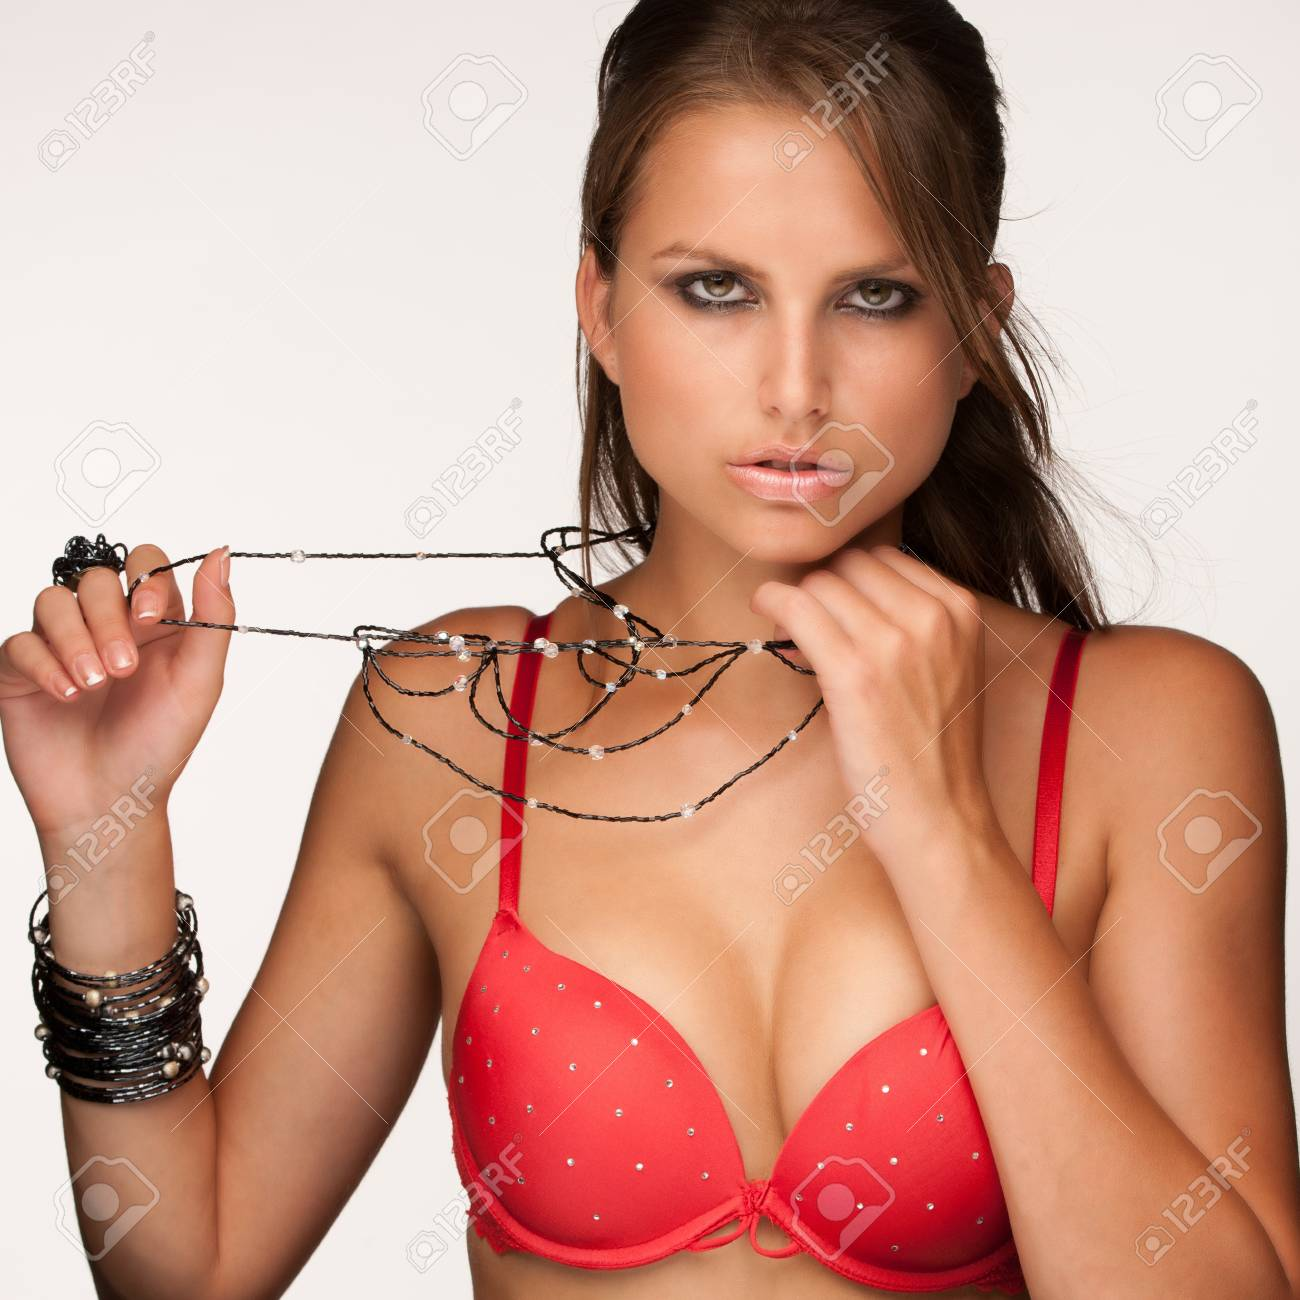 Beautiful young model in red underwear with jewelery Stock Photo - 15288707